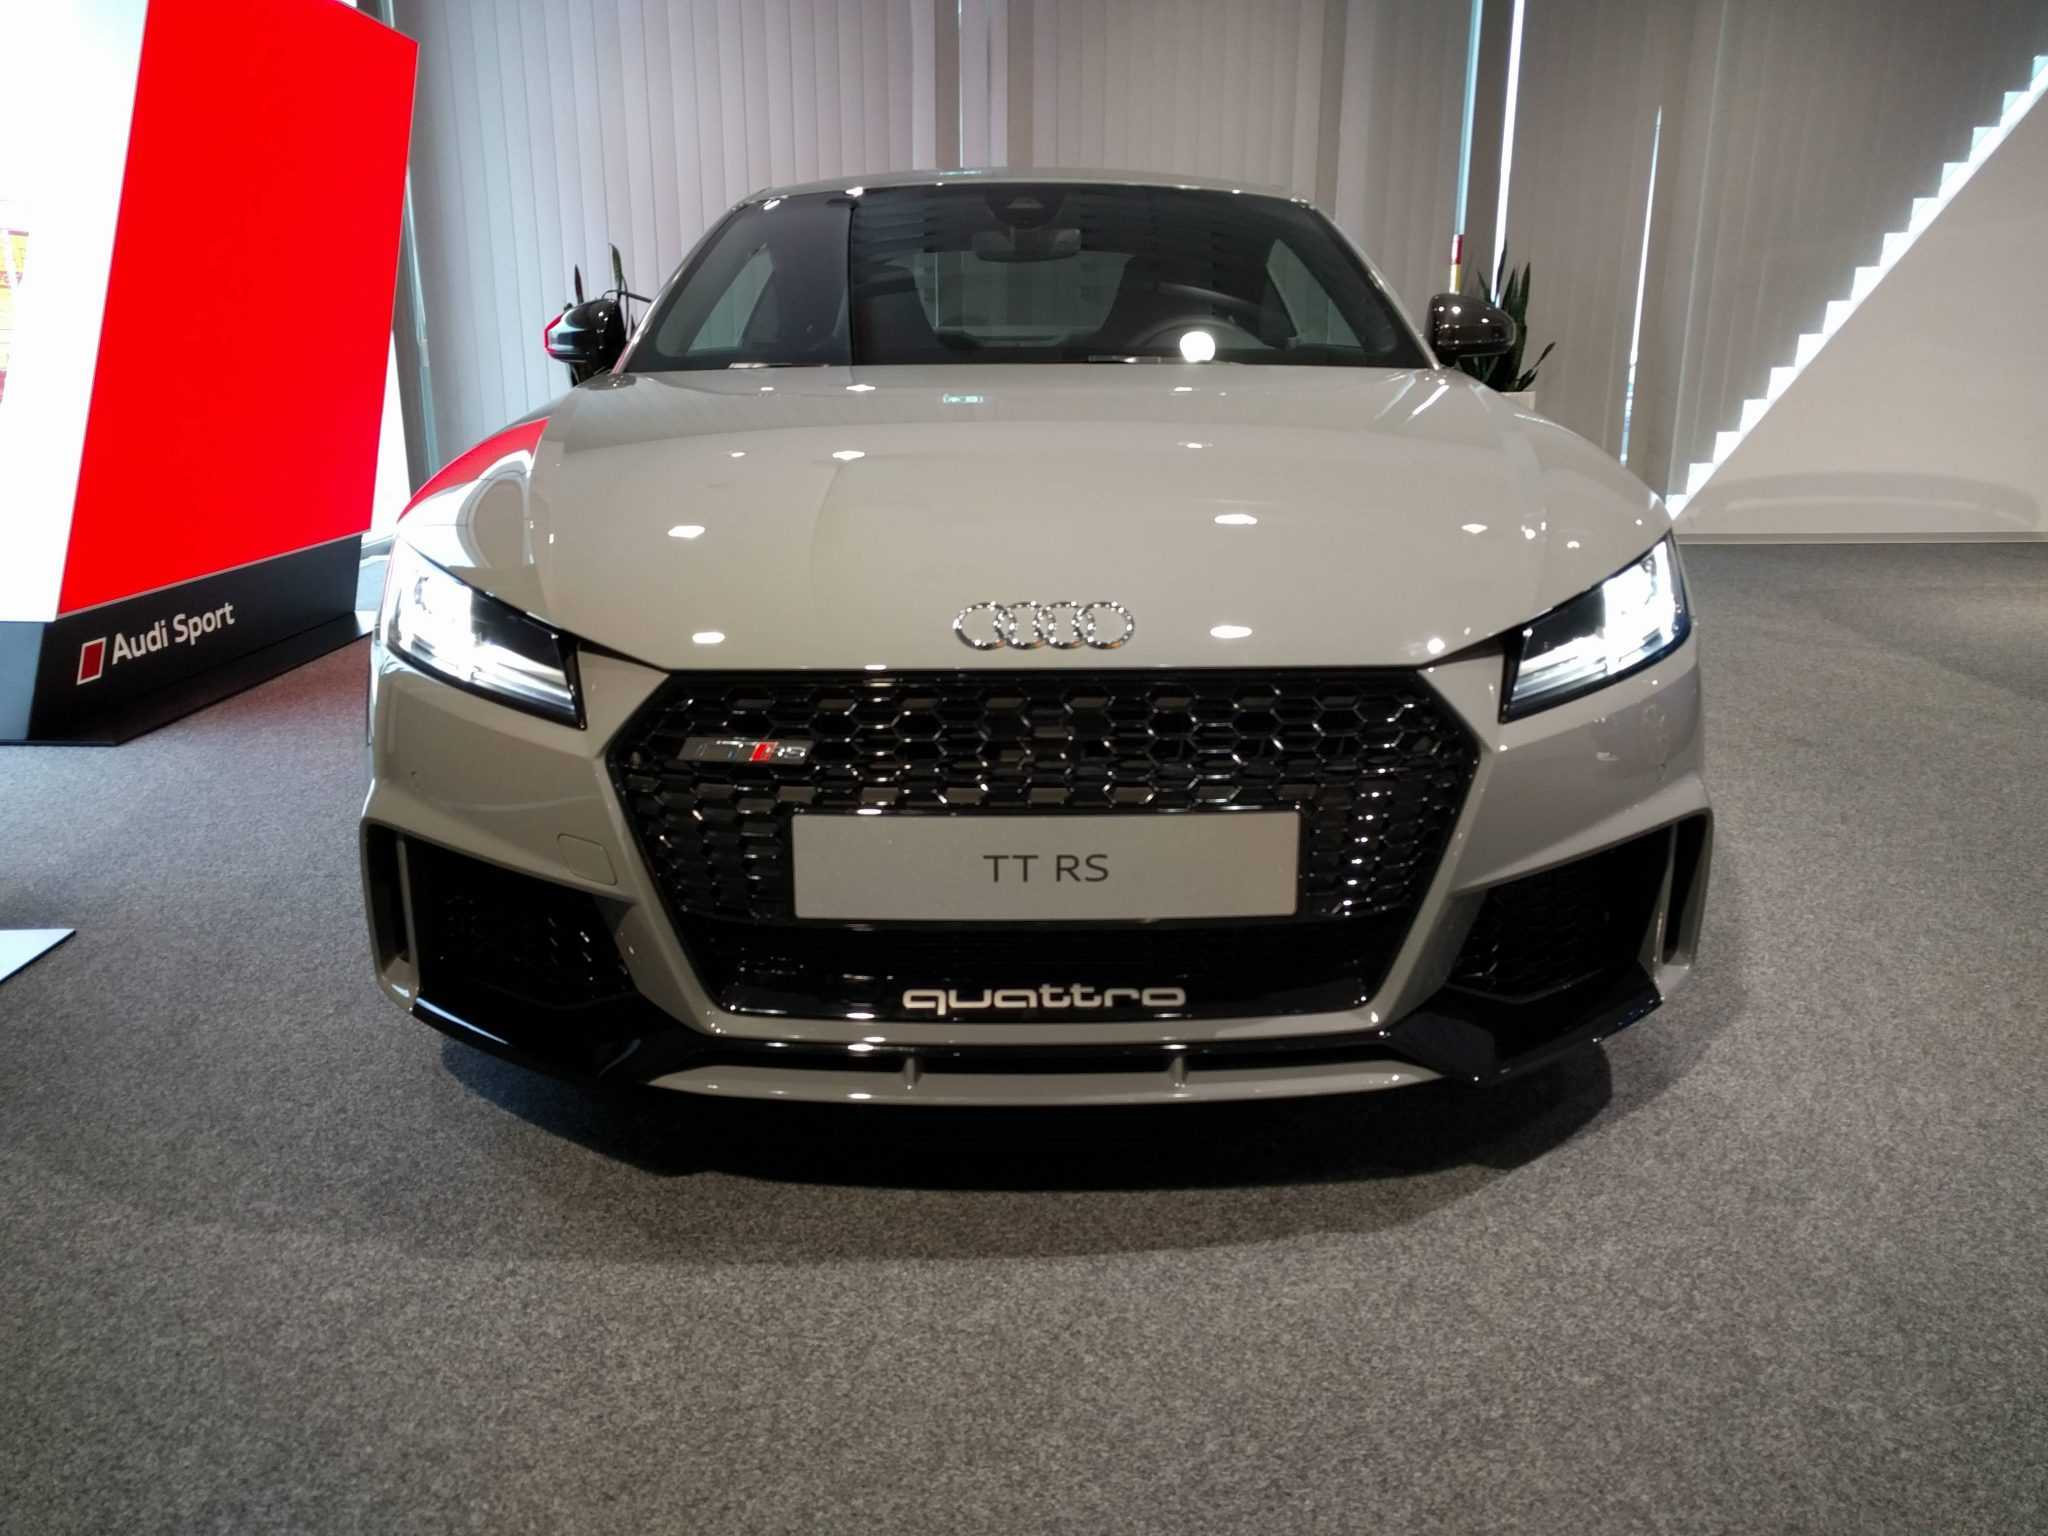 2018 audi tt rs nardo grey variant picture revealed in. Black Bedroom Furniture Sets. Home Design Ideas